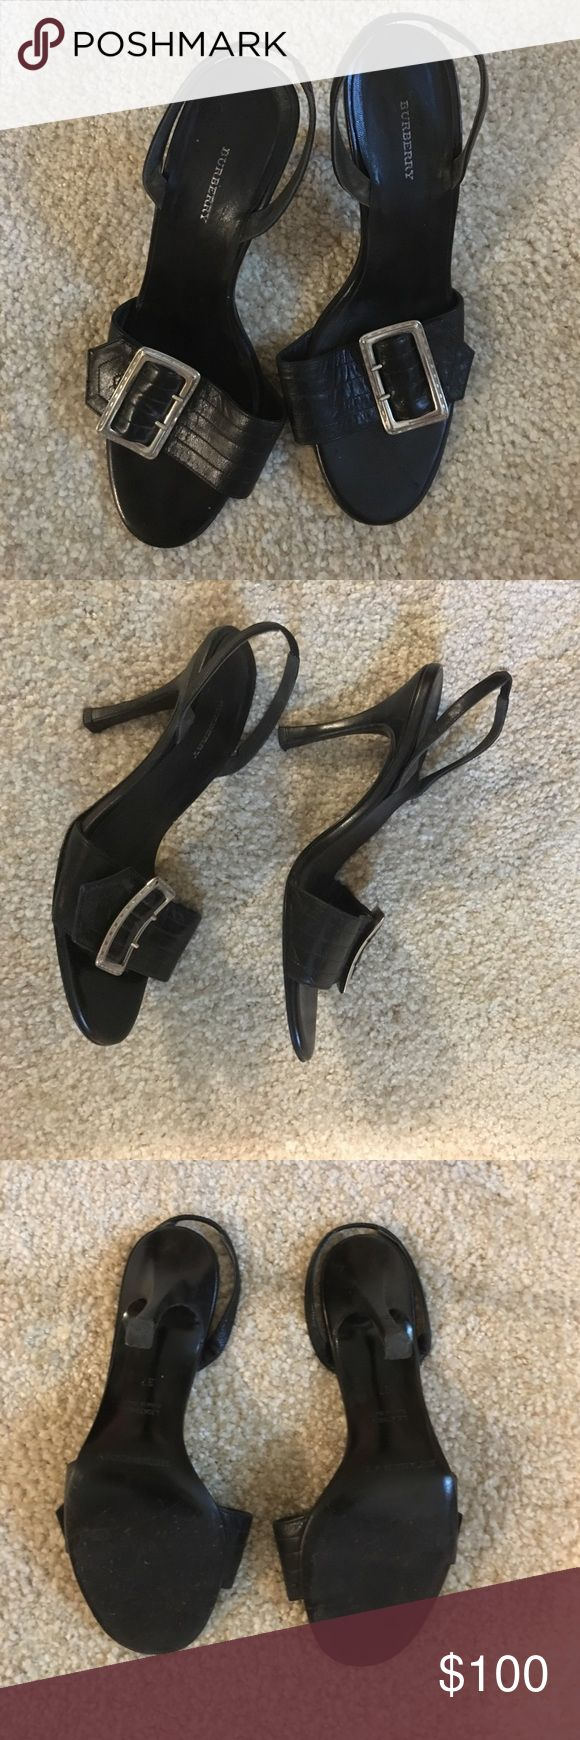 Burberry Black Slingback Sandal Heels, size 37 Burberry Black Slingback Sandal Heels with big silver buckle, size 37 Burberry Shoes Heels